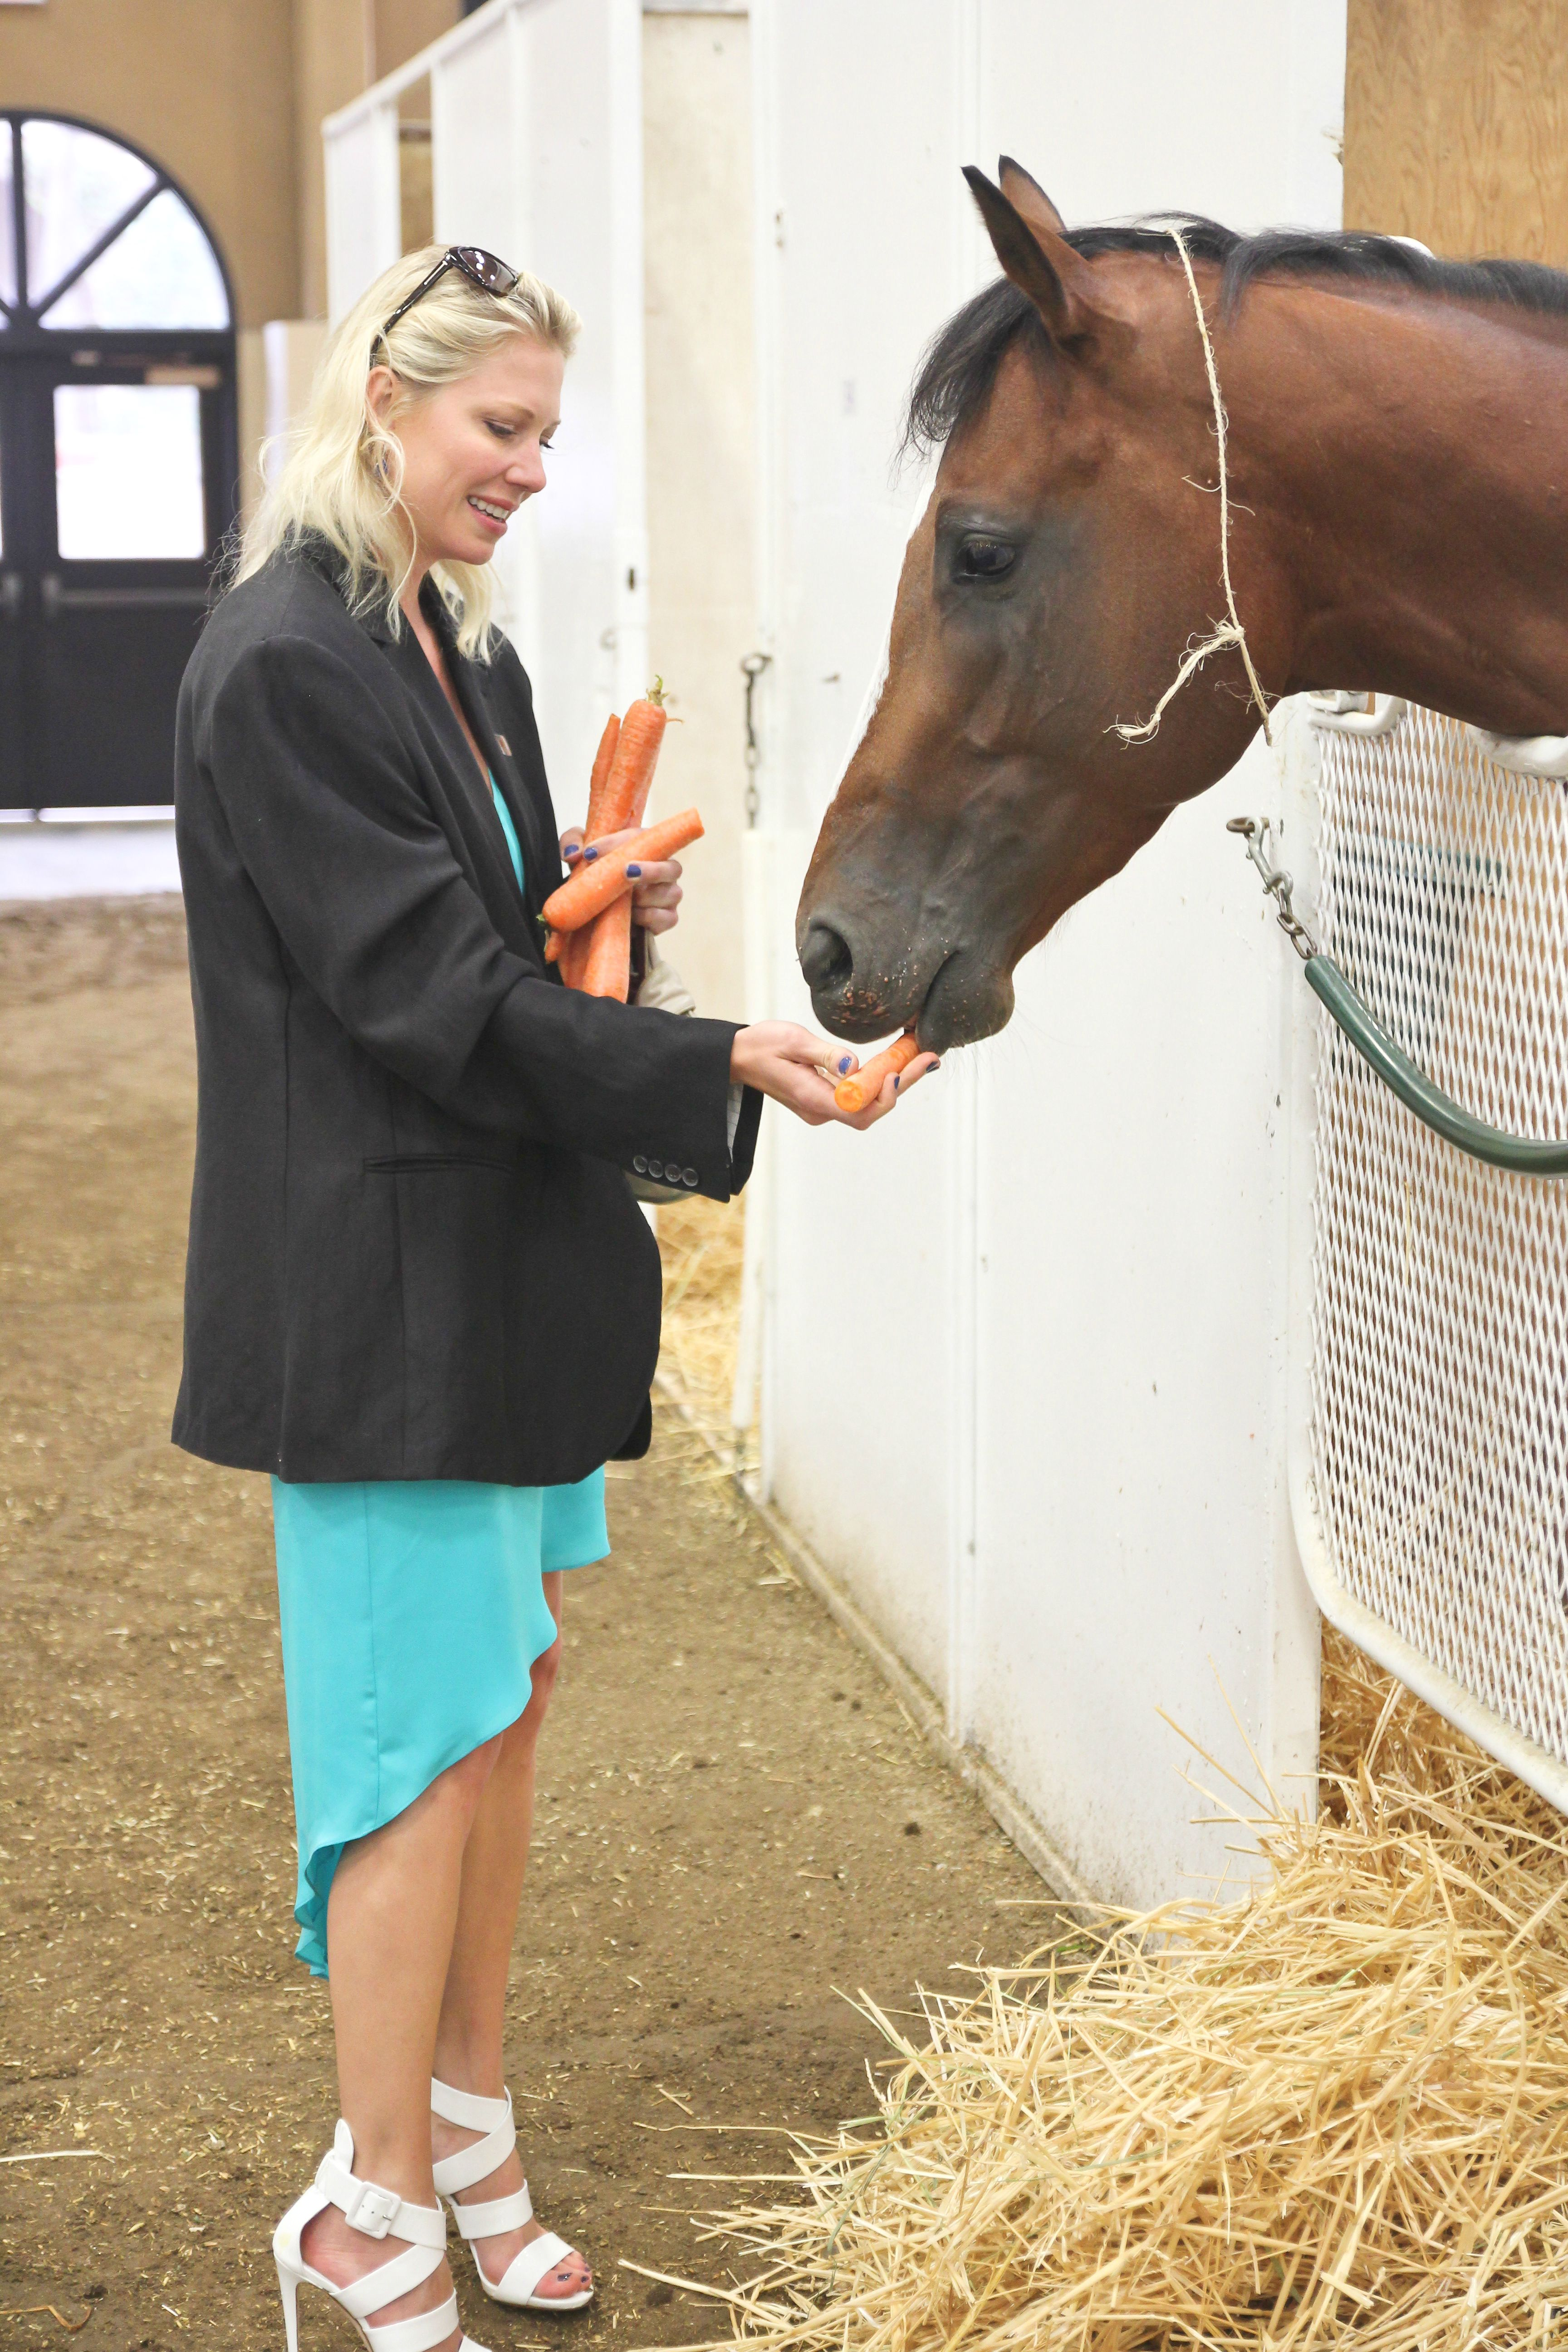 Mary feeding horse carrots 2013